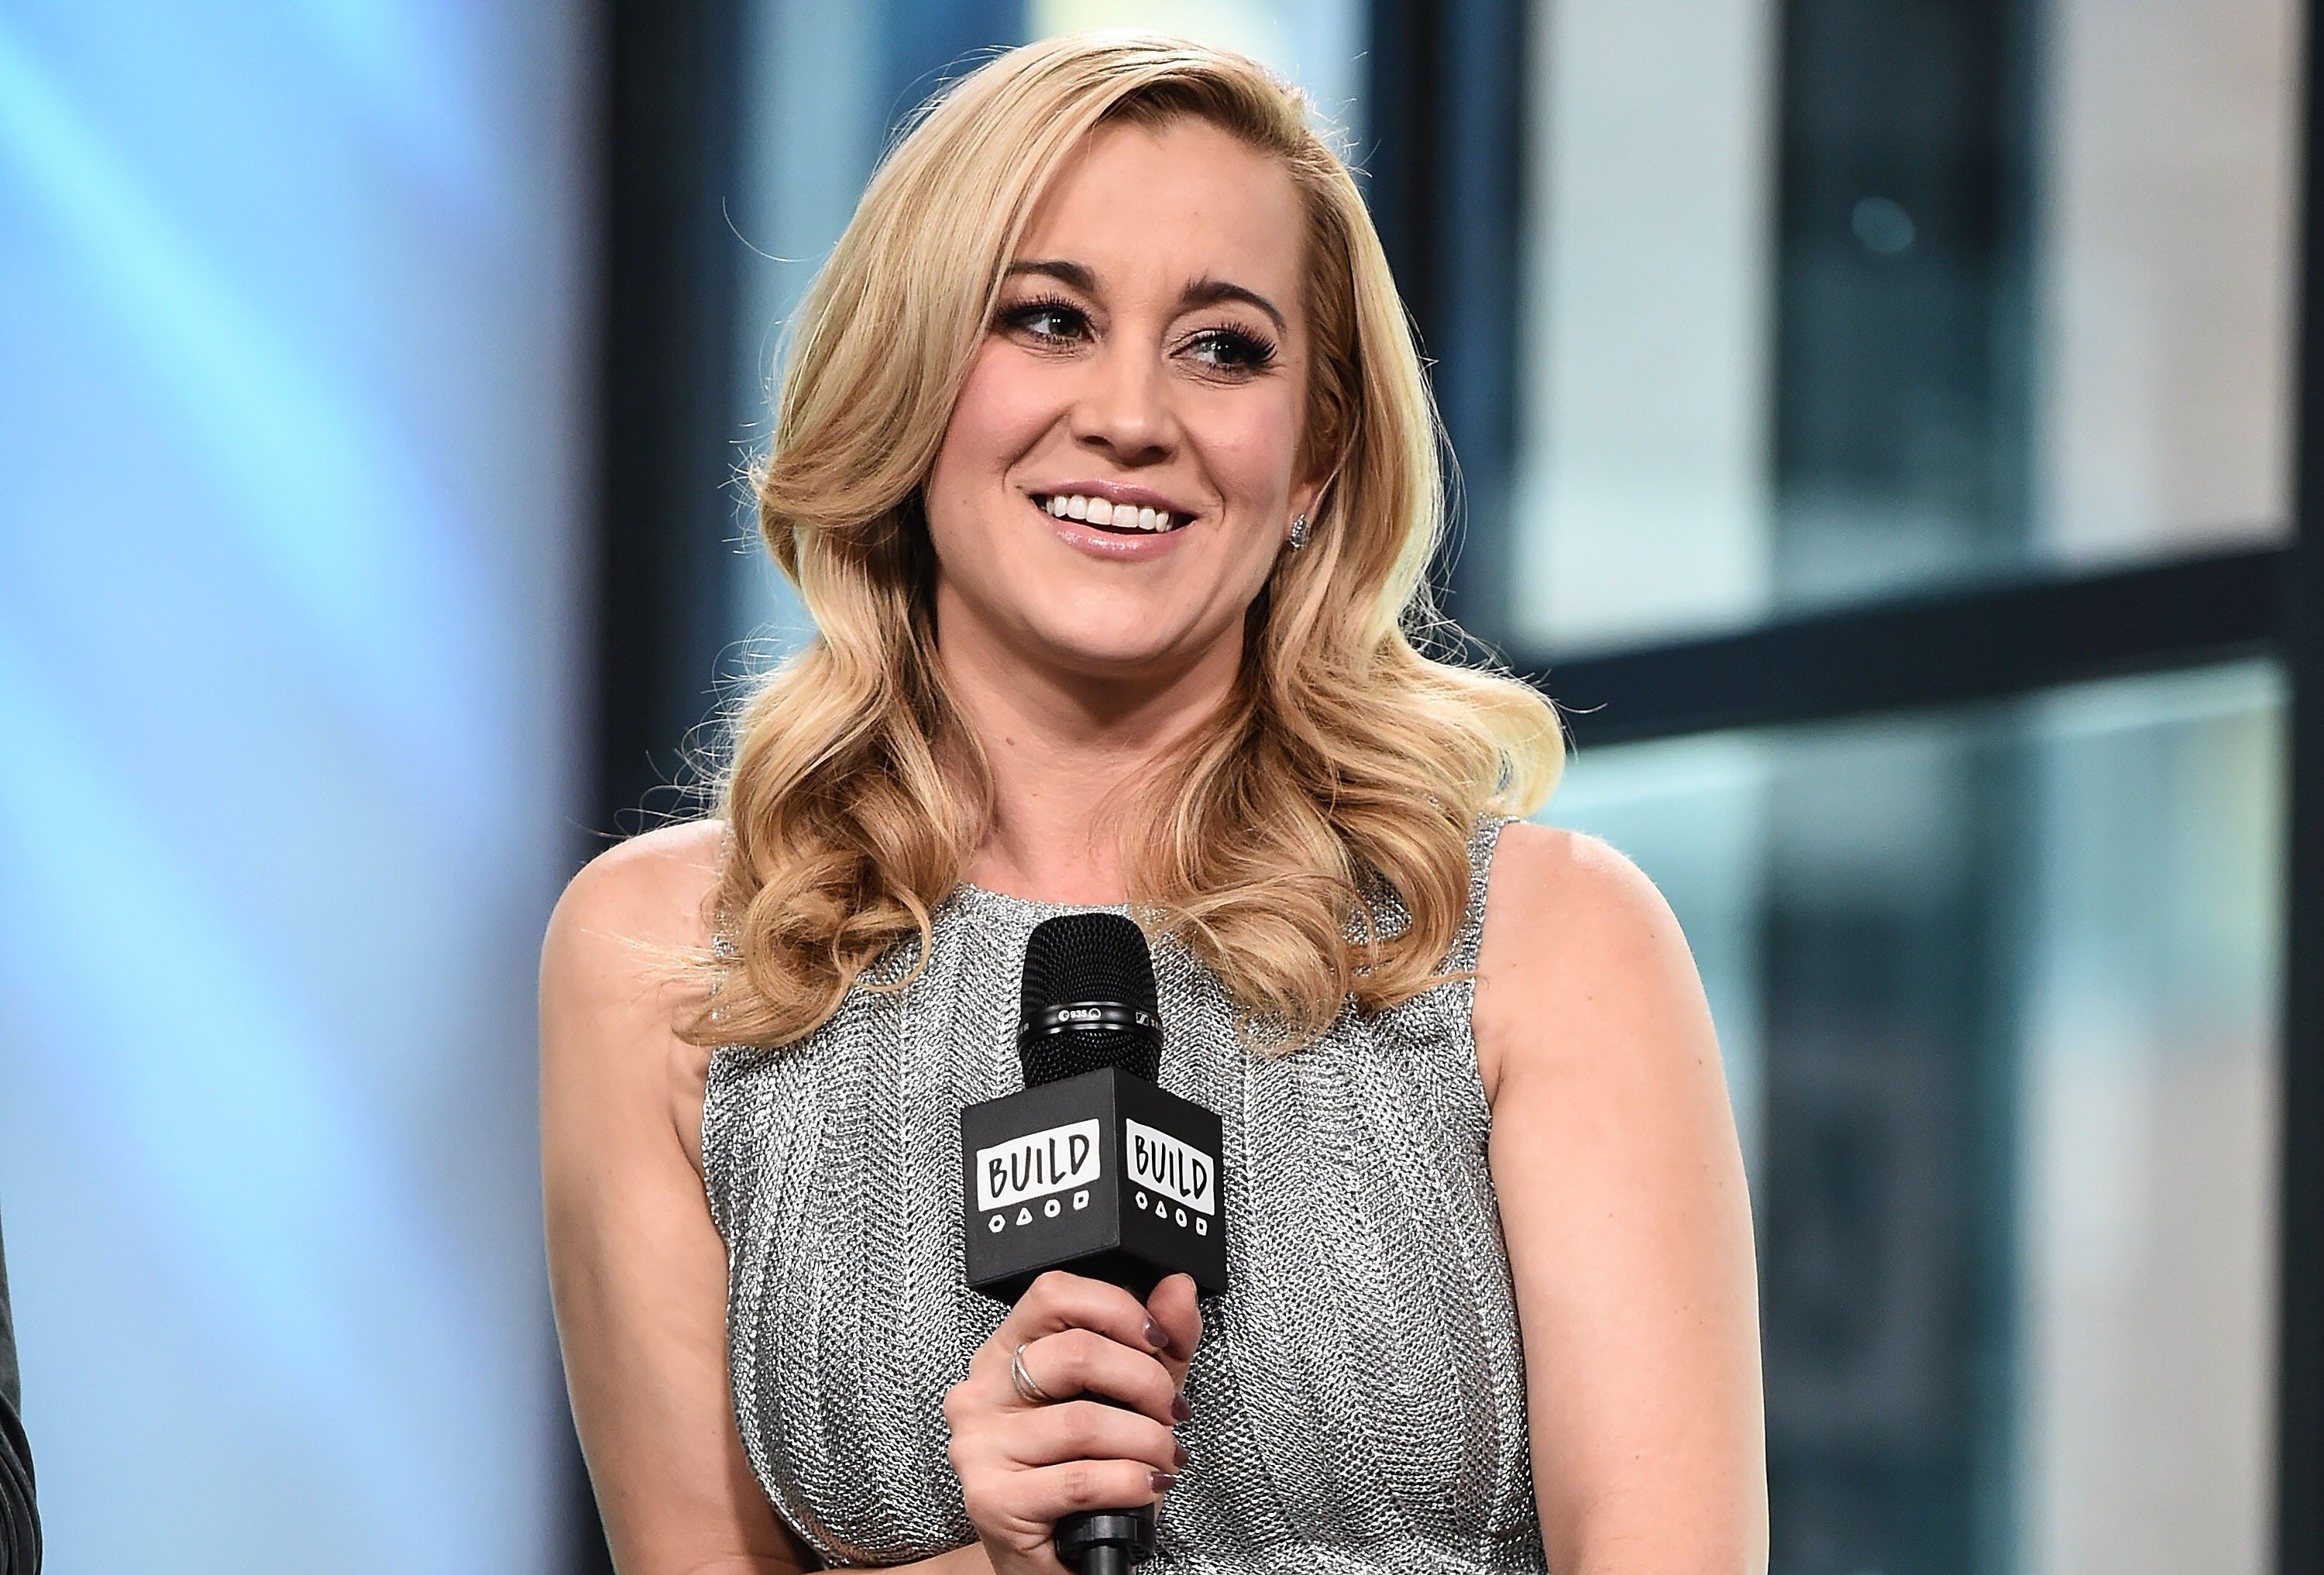 NEW YORK, NY - AUGUST 01:  Kellie Pickler attends the Build Series to discuss her show 'I Love Kellie Pickler' at Build Studio on August 1, 2017 in New York City.  (Photo by Daniel Zuchnik/WireImage)